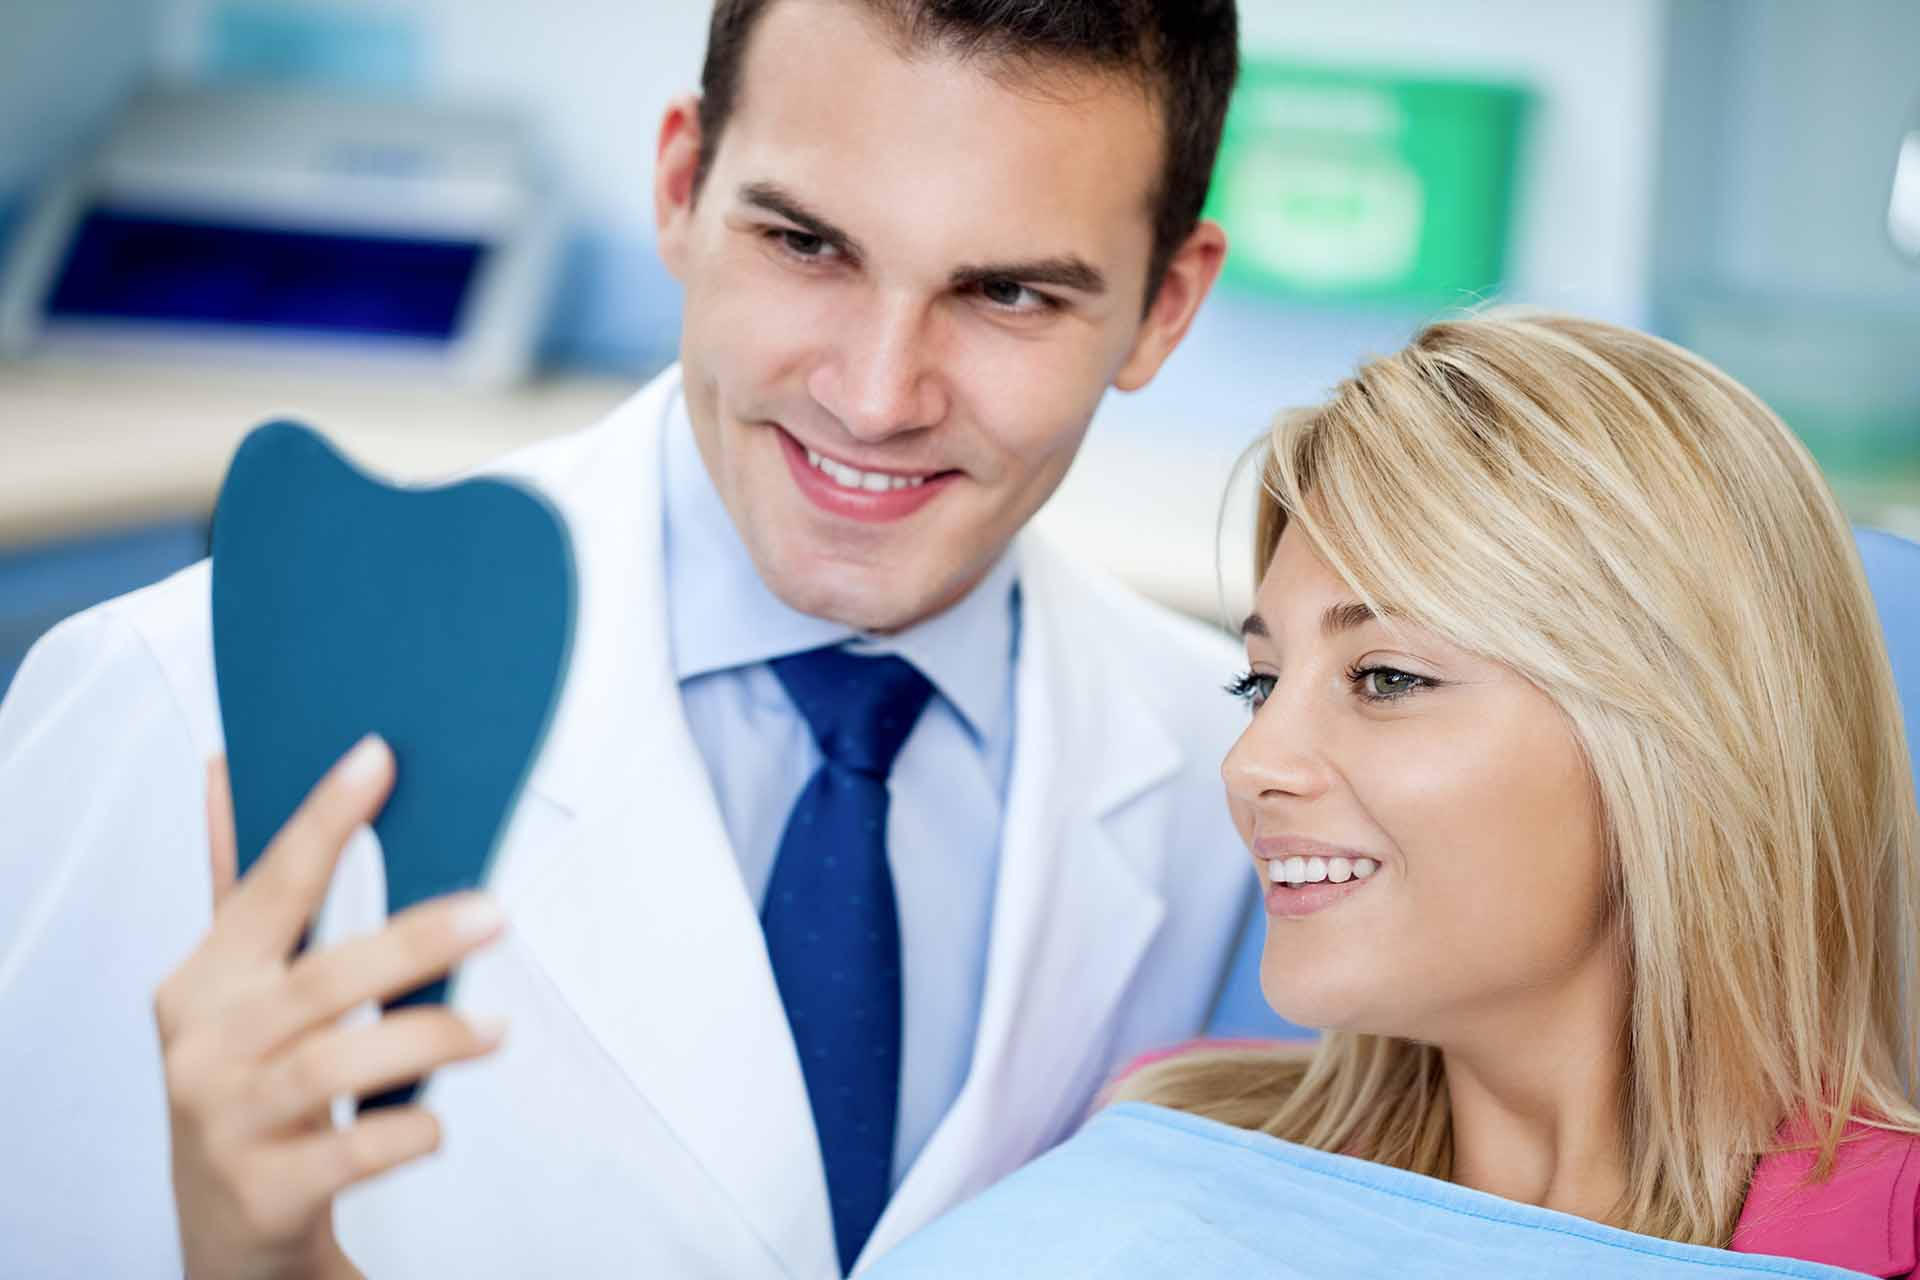 Enhancing your smile with teeth whitening in Candler, NC.